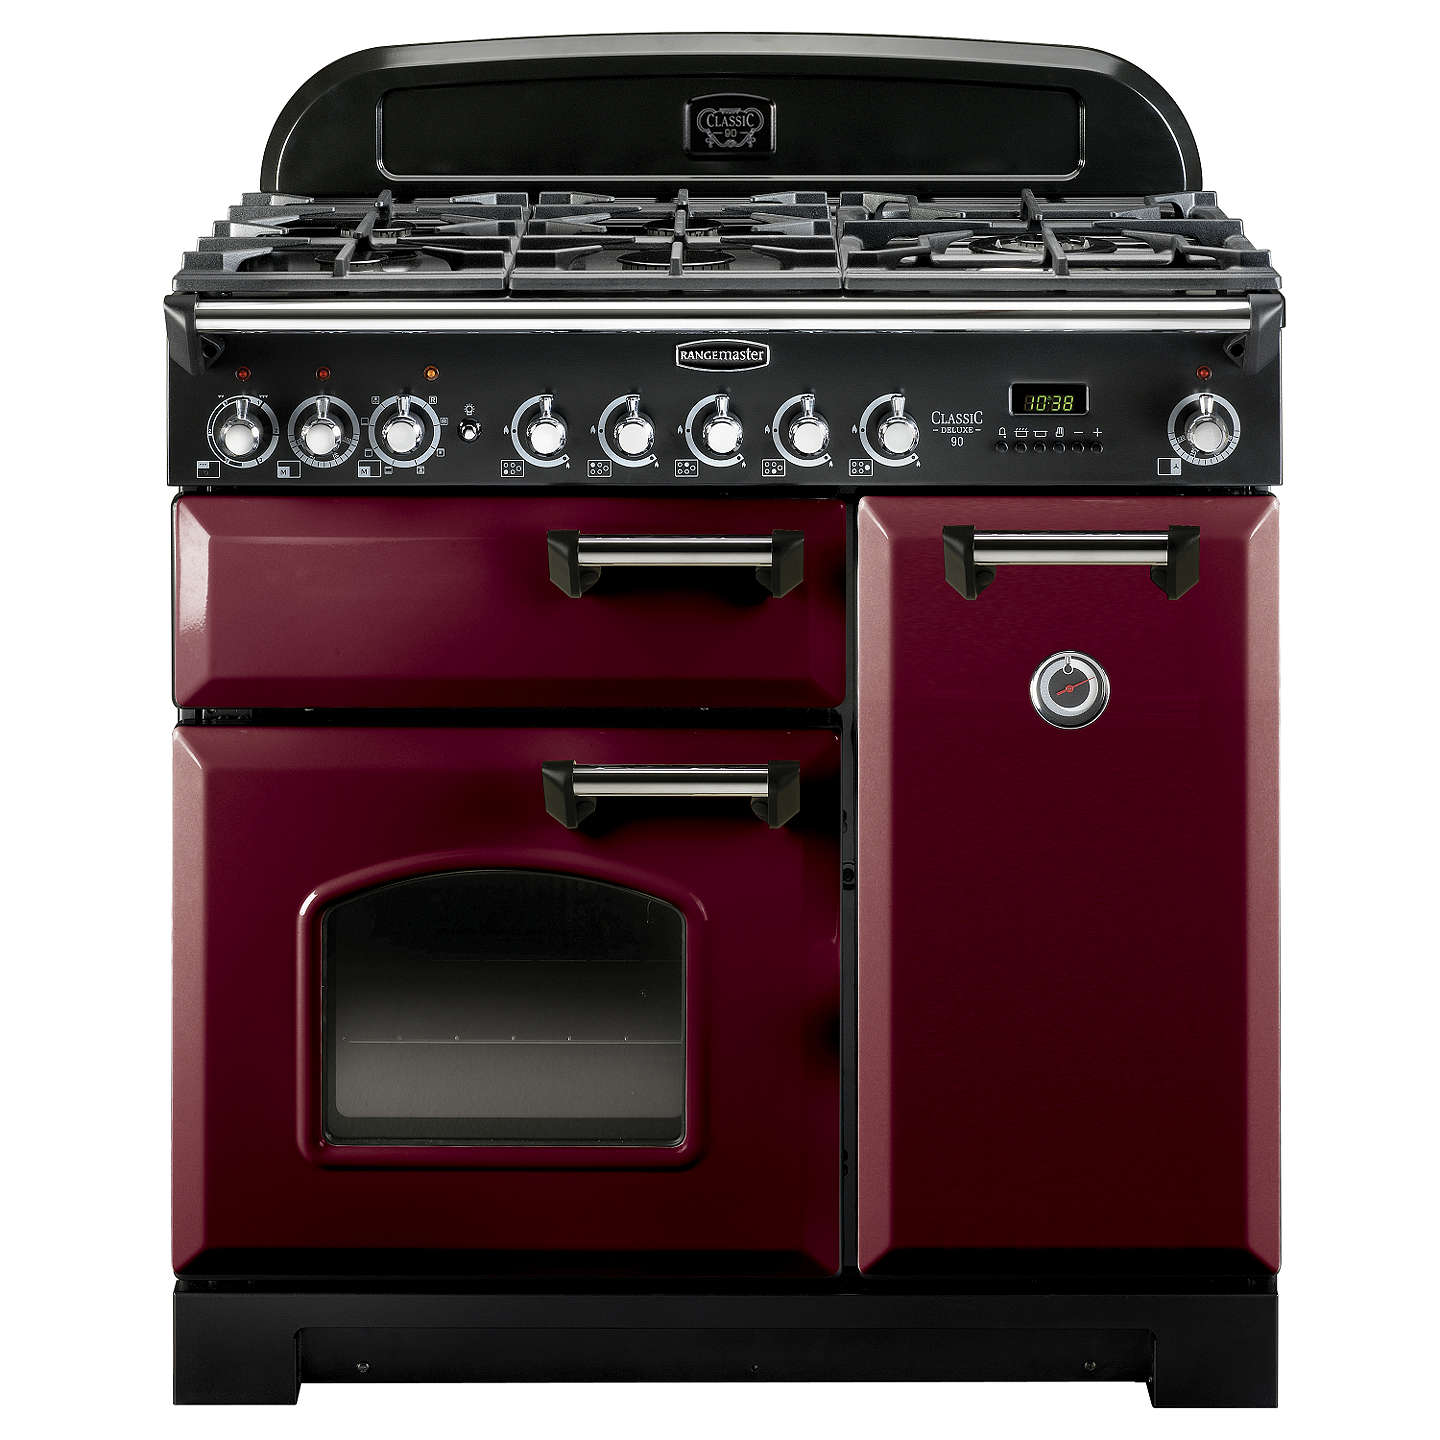 rangemaster classic deluxe 90 dual fuel range cooker at. Black Bedroom Furniture Sets. Home Design Ideas